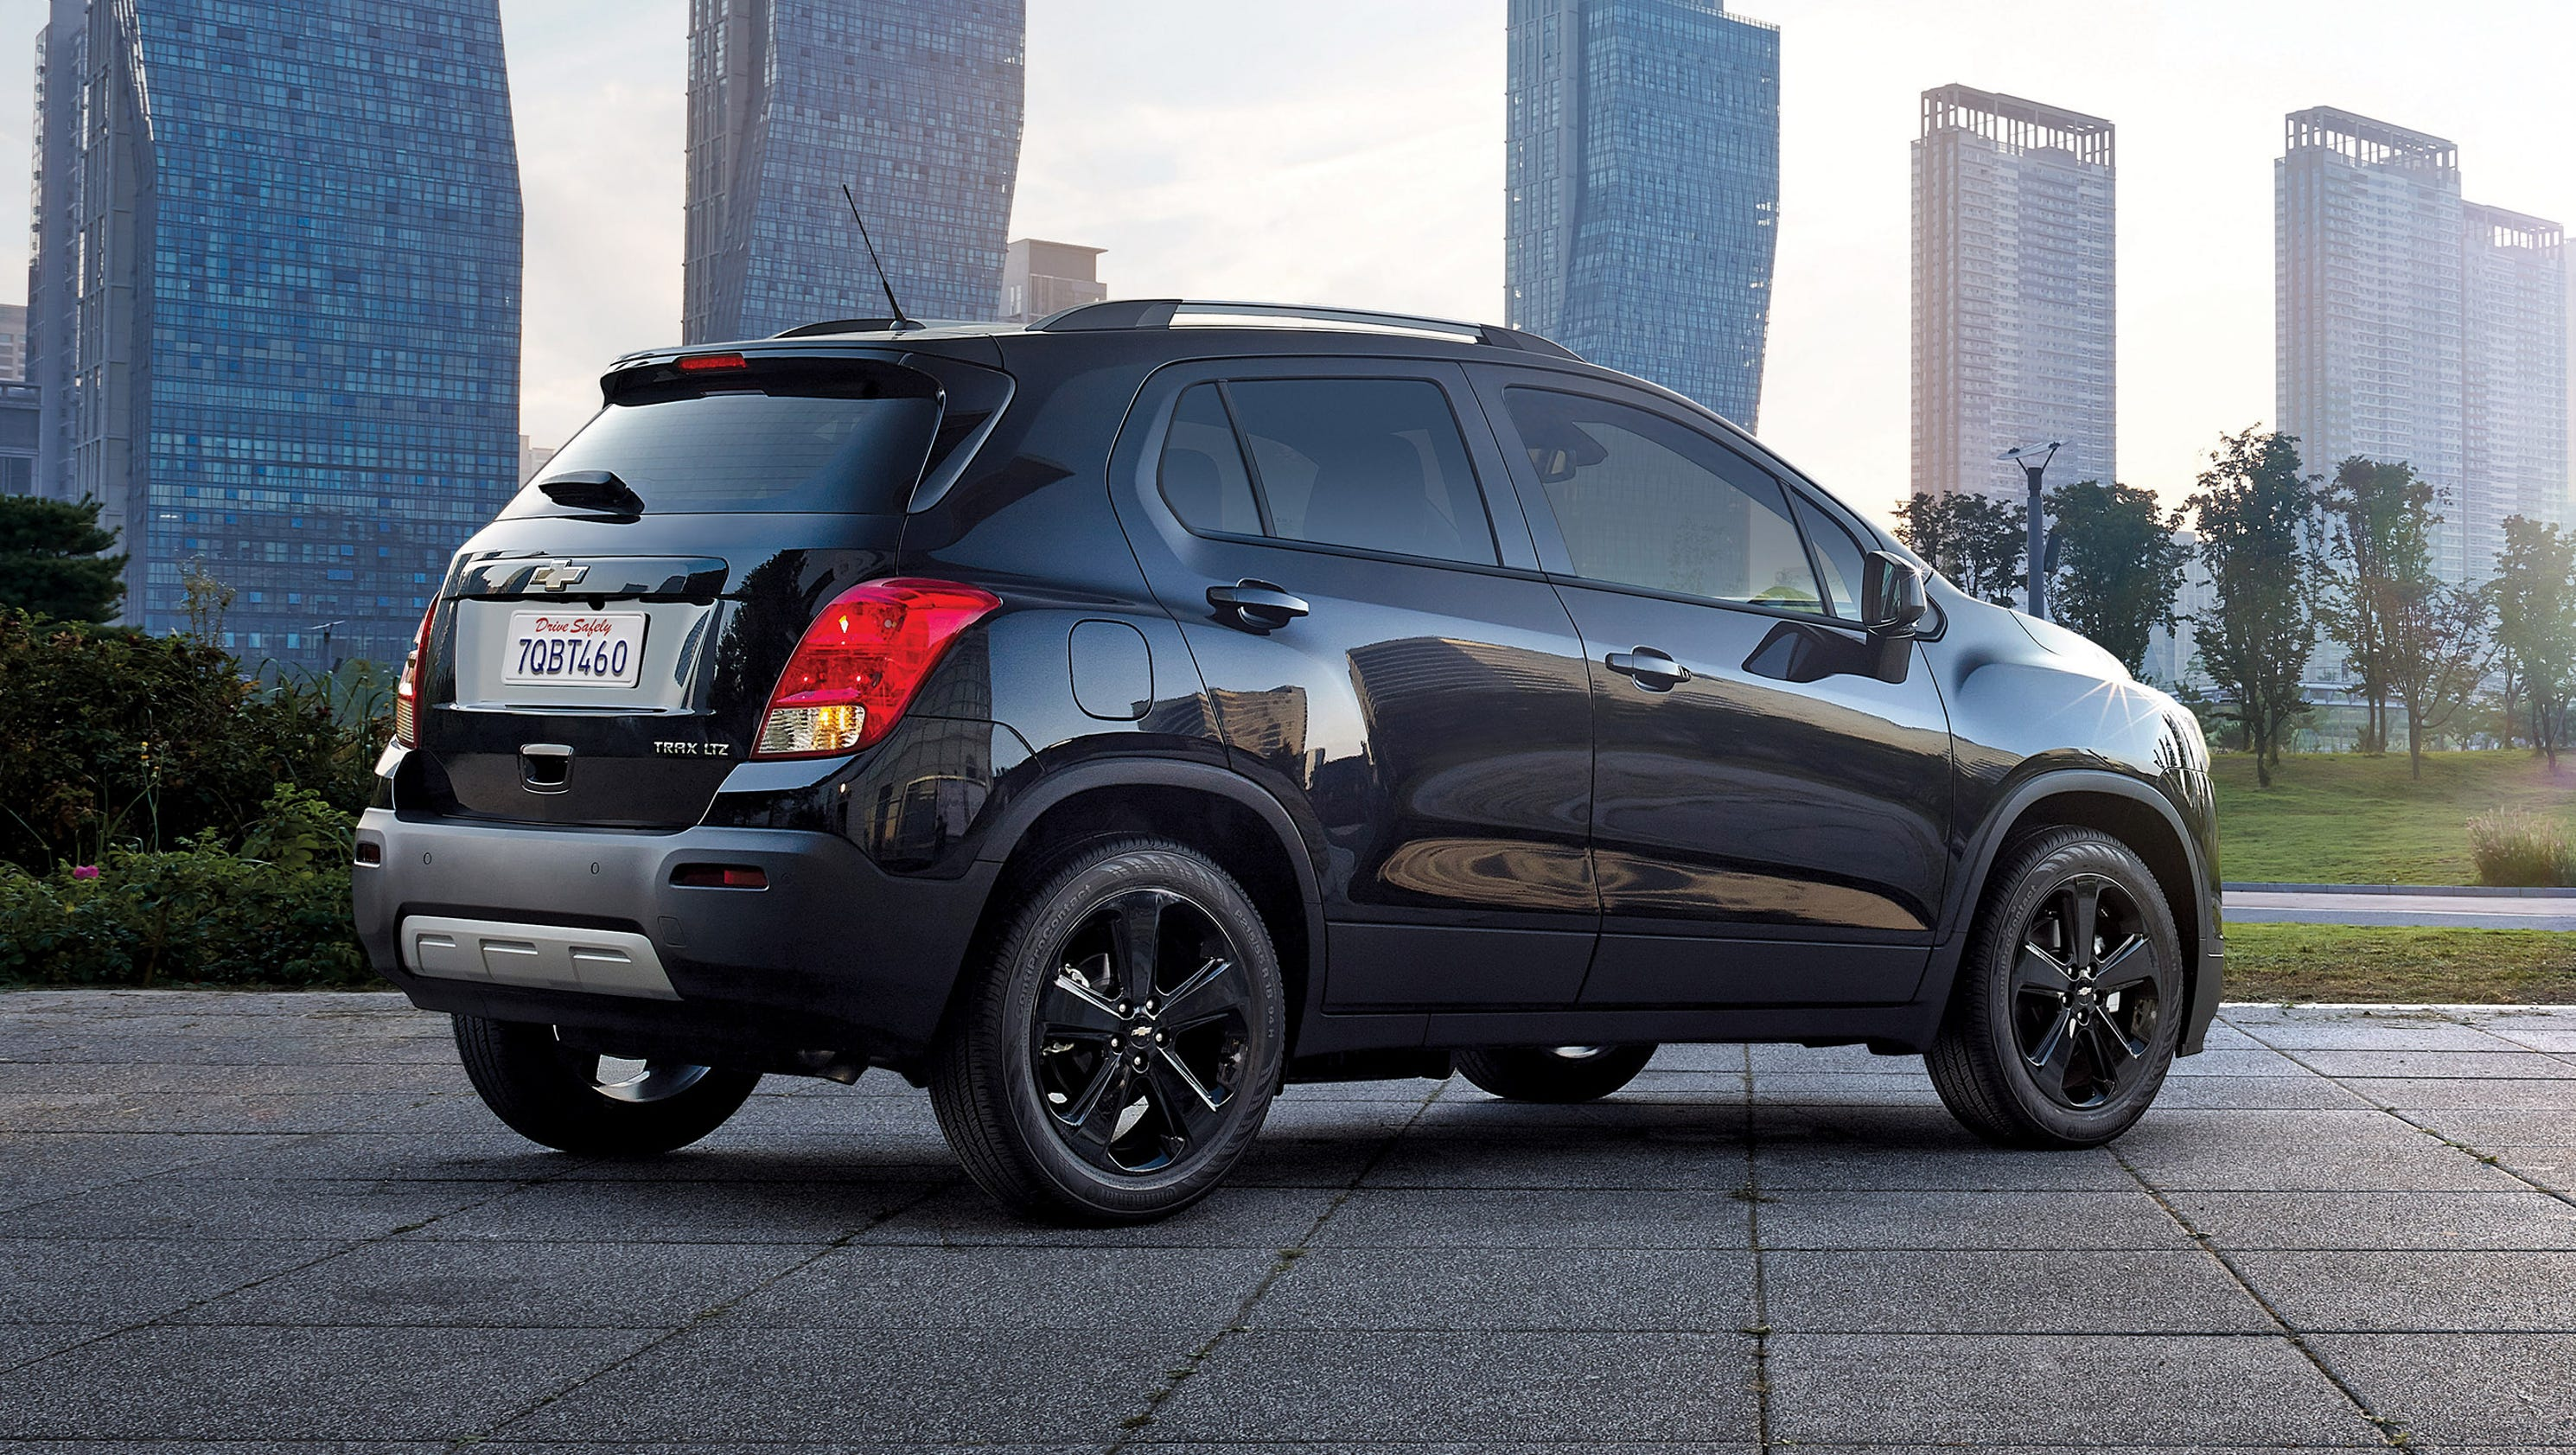 Special Edition Chevy Trax part of GM crossover plan